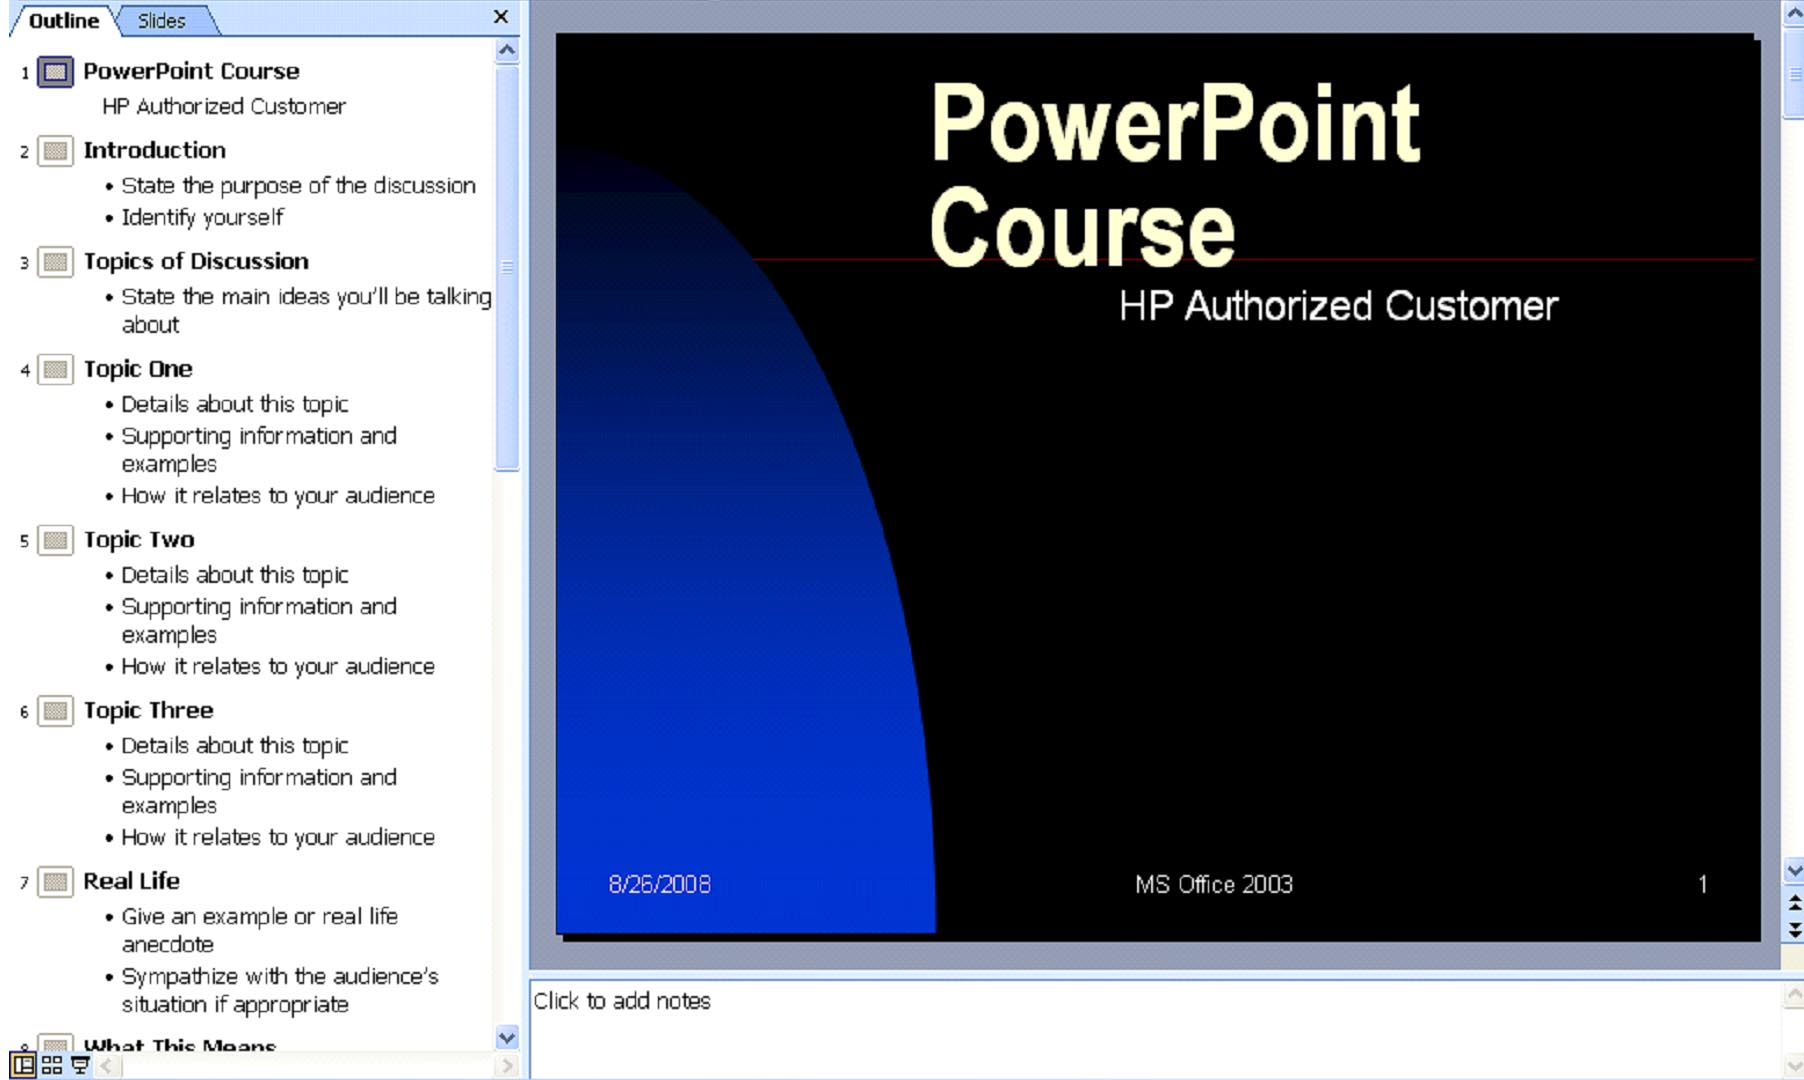 Powerpoint 2003 how to create presentations universalclass the appropriate window where the changes need to be made otherwise click finish and view the document your presentation will open in the slide panel toneelgroepblik Image collections